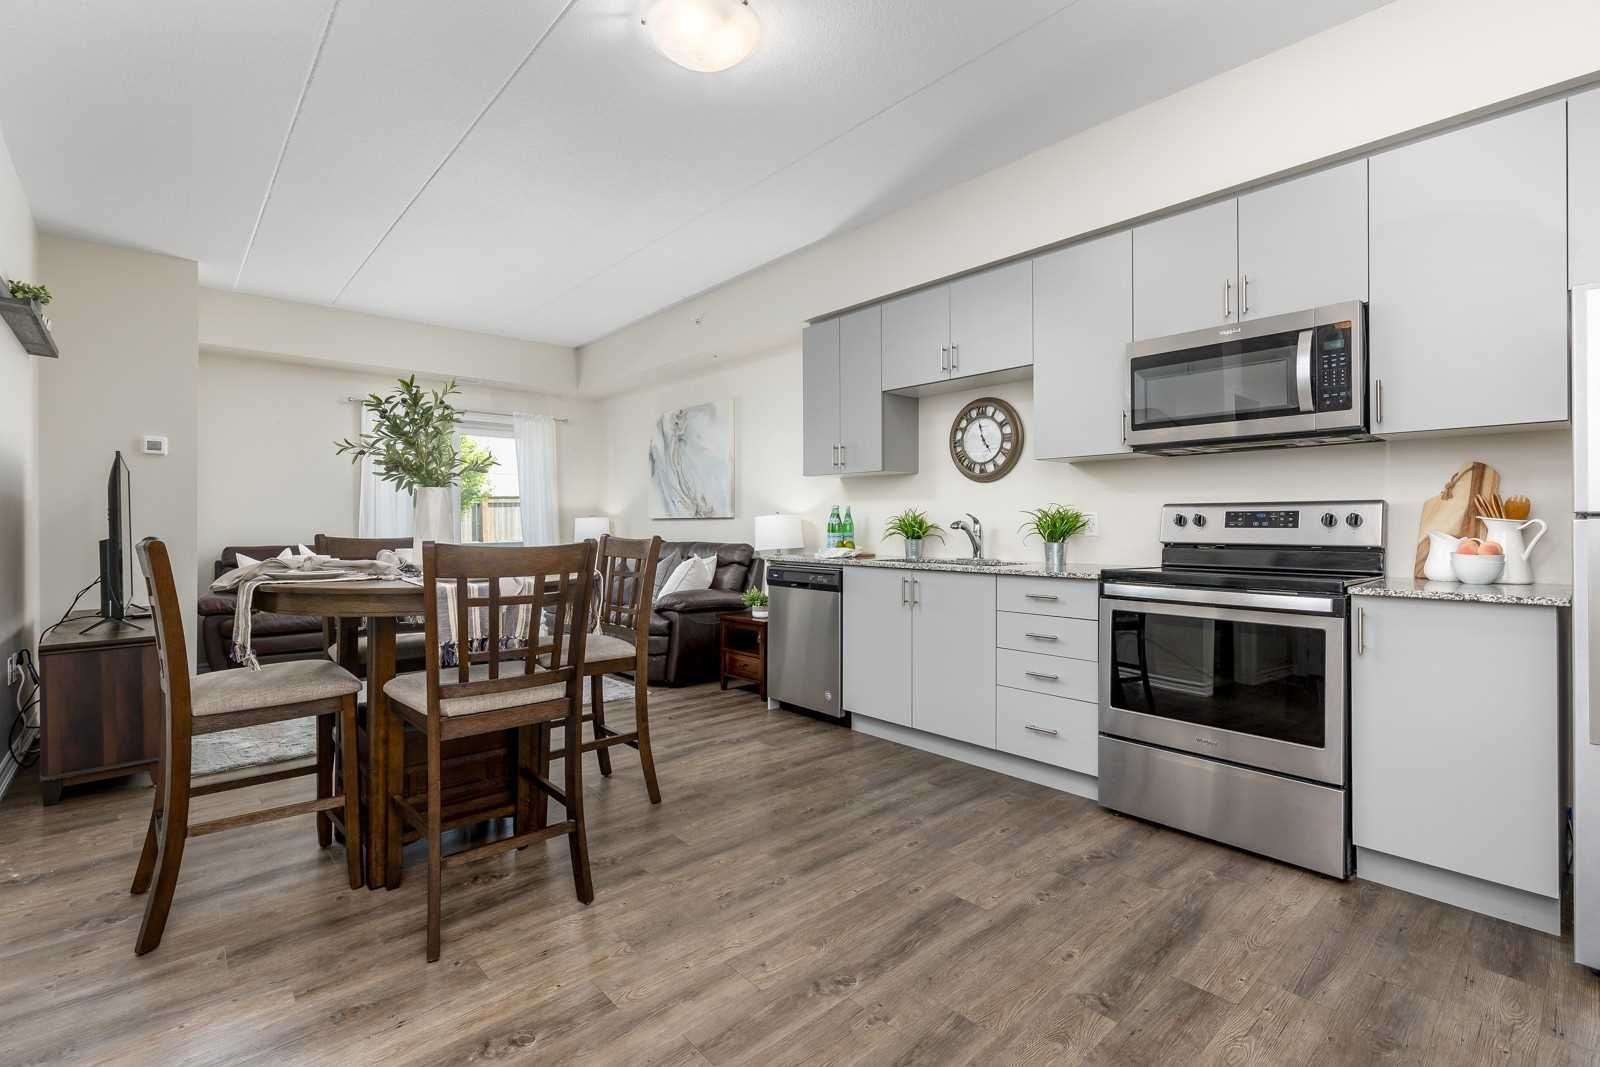 290 Liberty St N, unit 114 for sale in Toronto - image #2